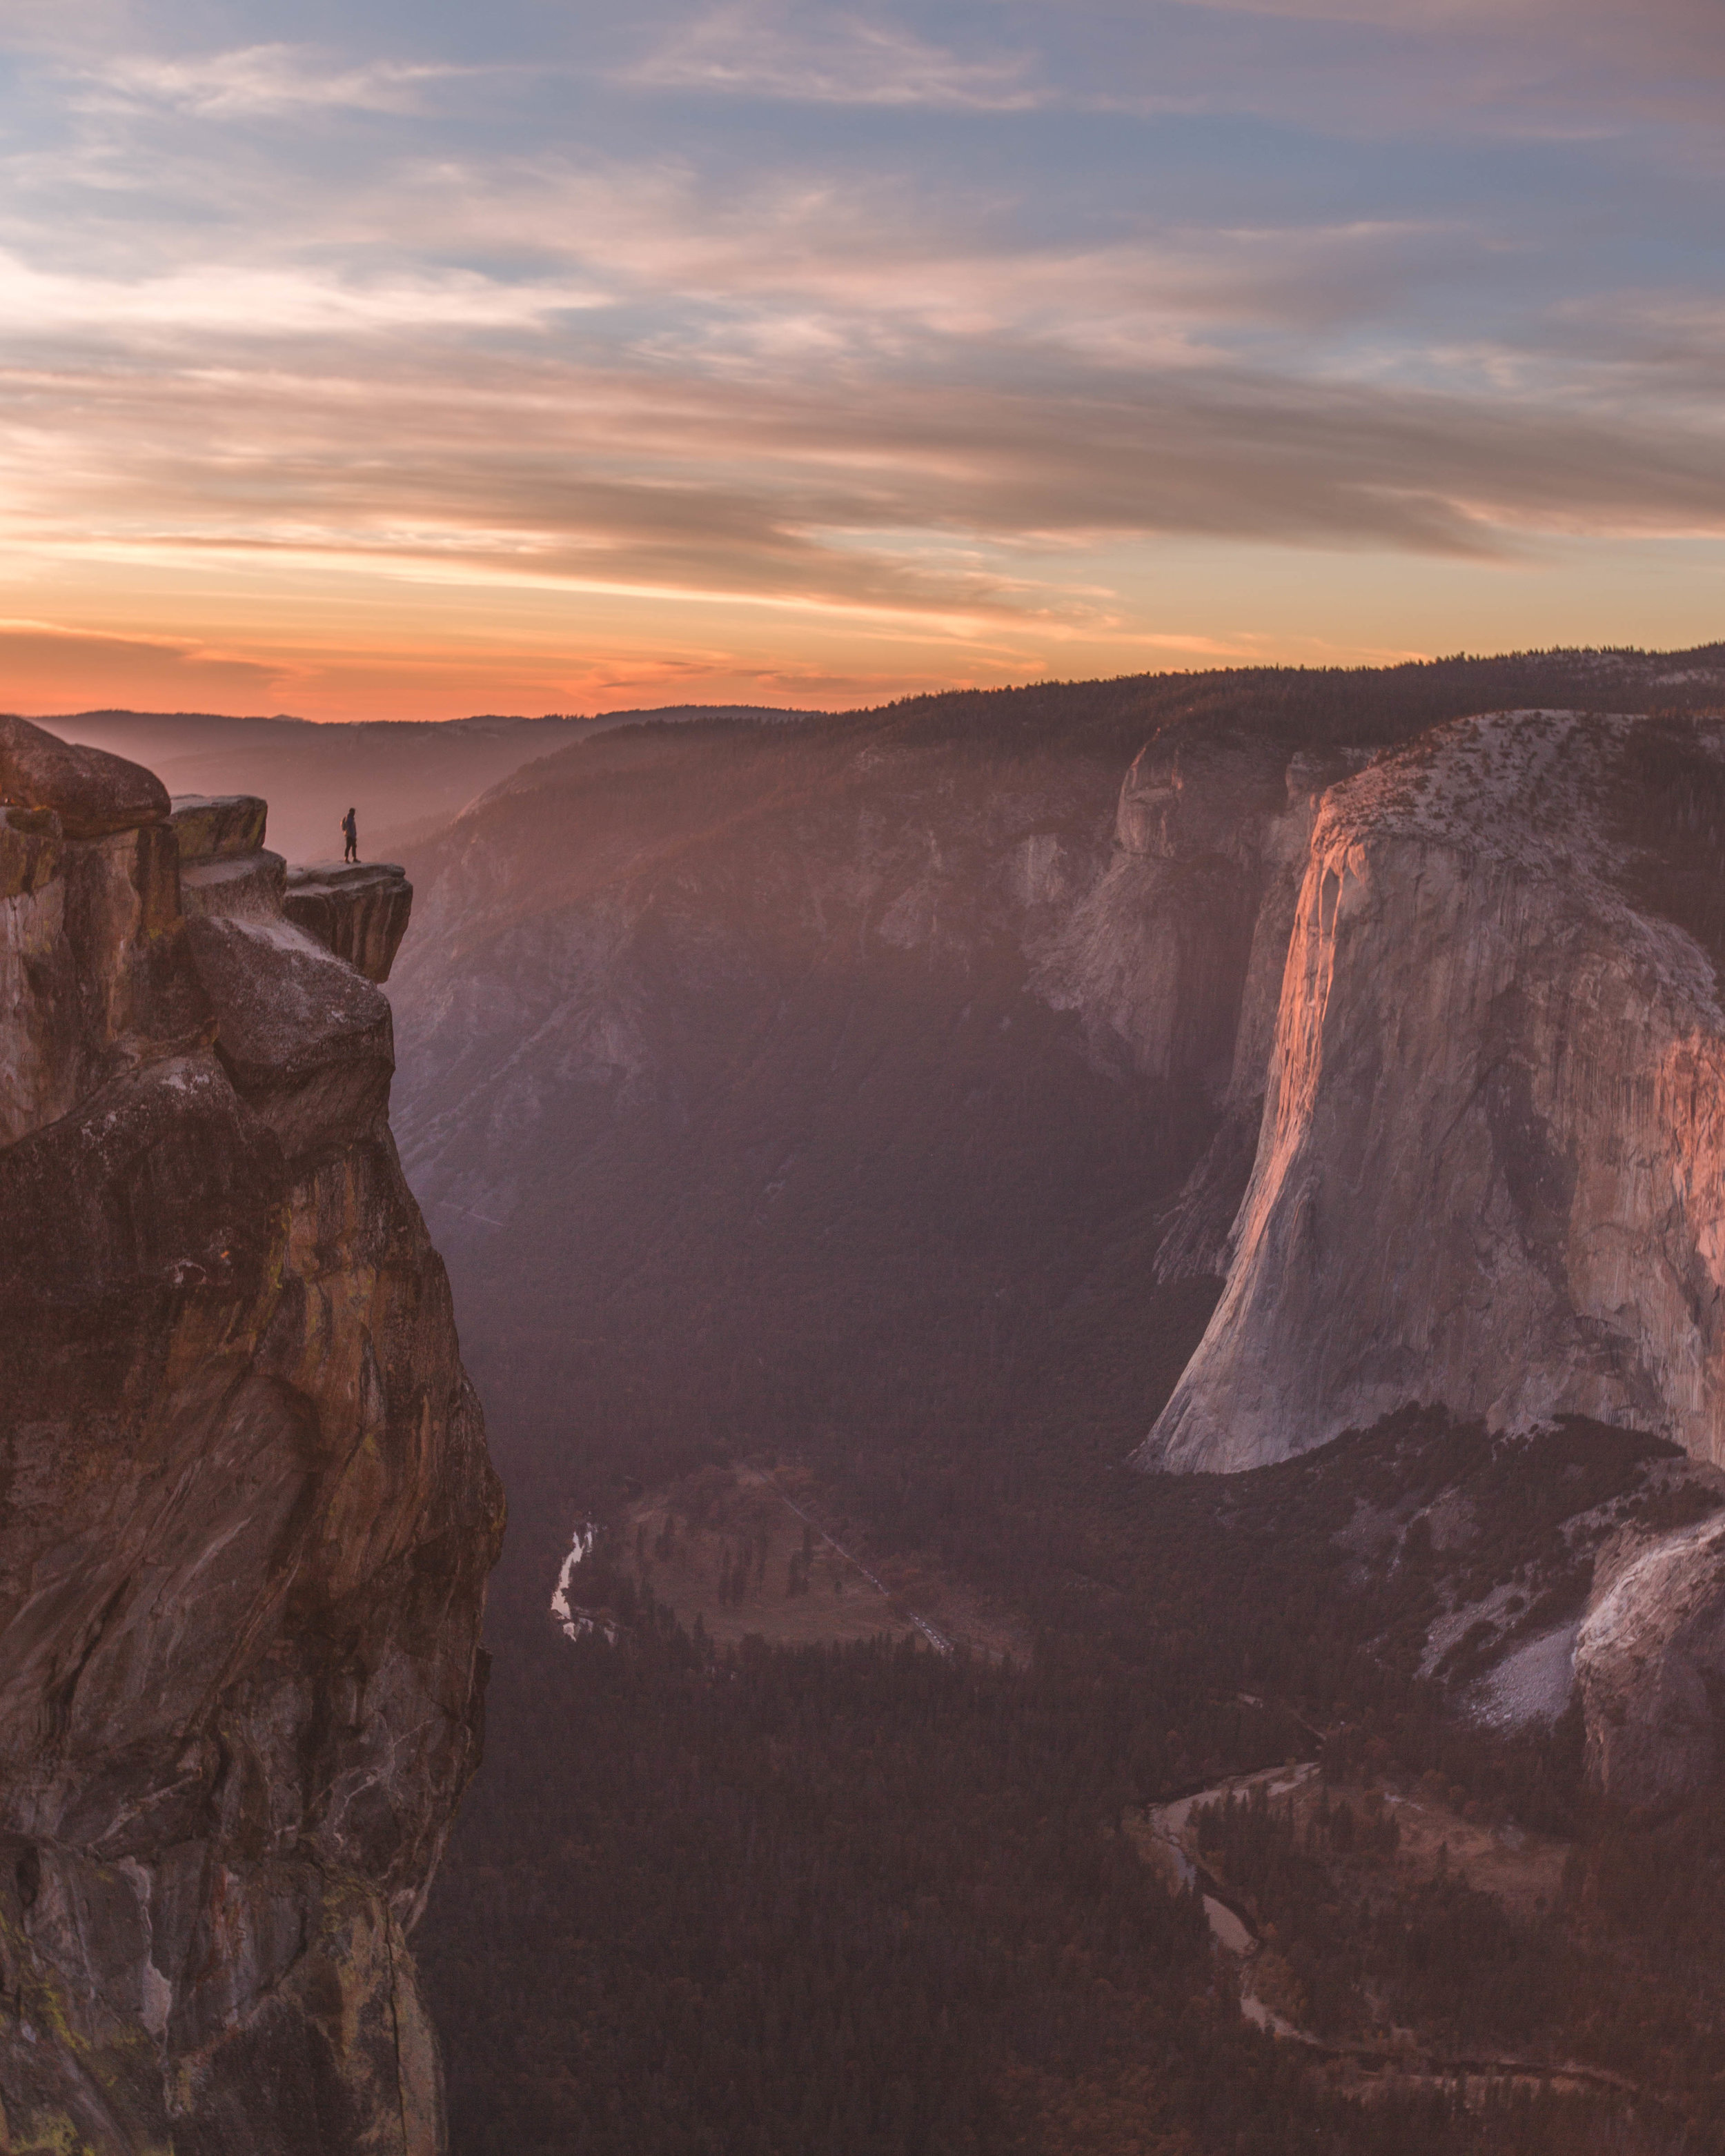 Standing on the ledge at Taft Point